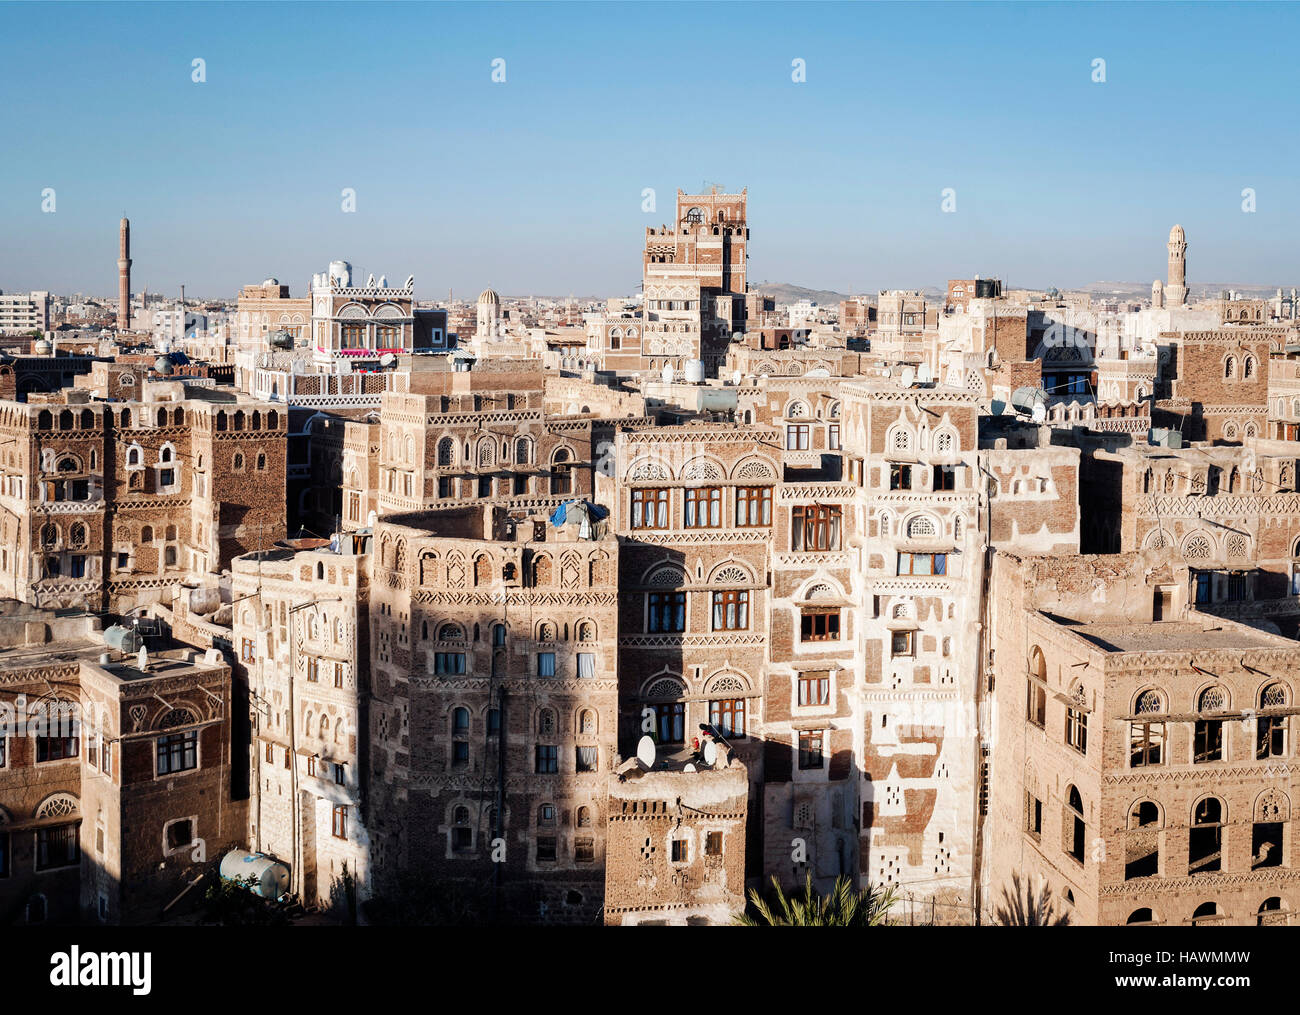 view of central sanaa  city old town skyline traditional buildings in yemen - Stock Image